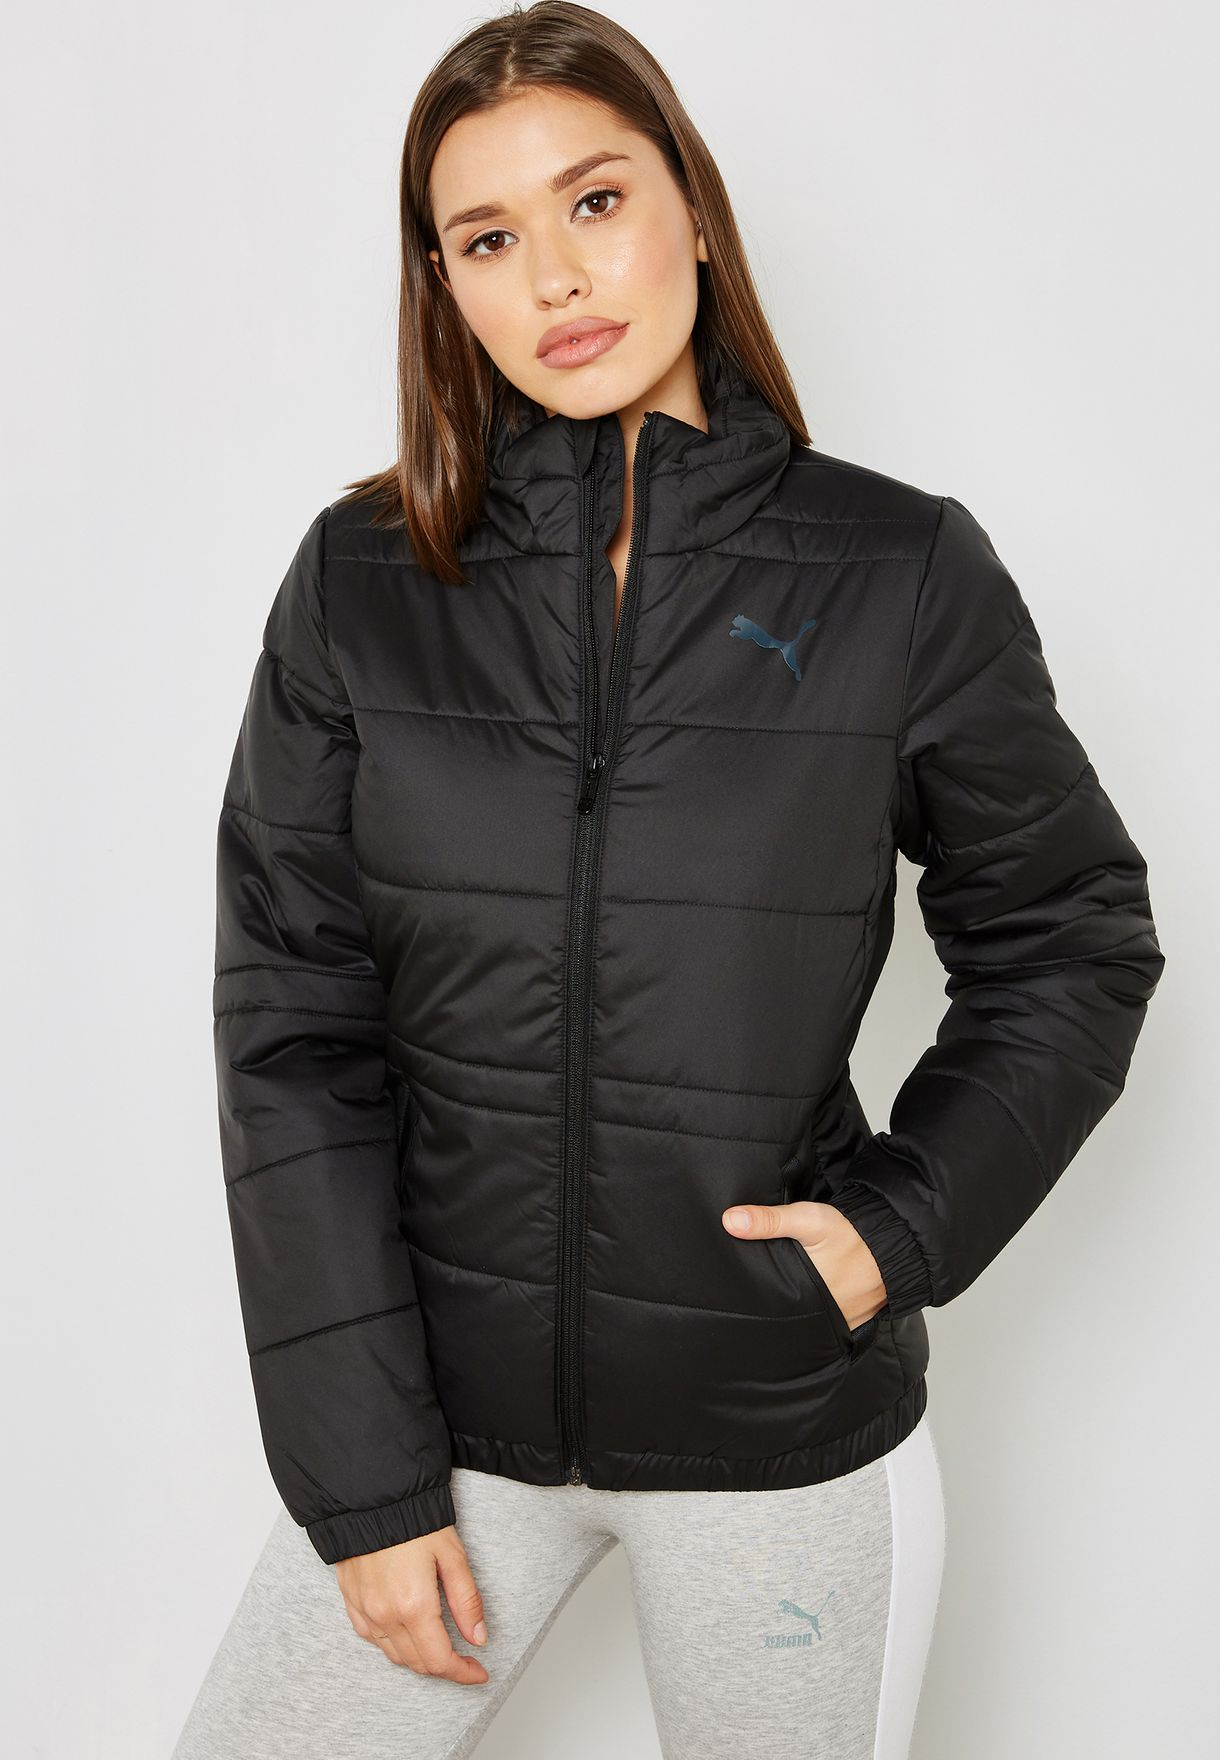 e3d7d35d032 Shop PUMA black Essential Padded Jacket 85164801 for Women in UAE ...